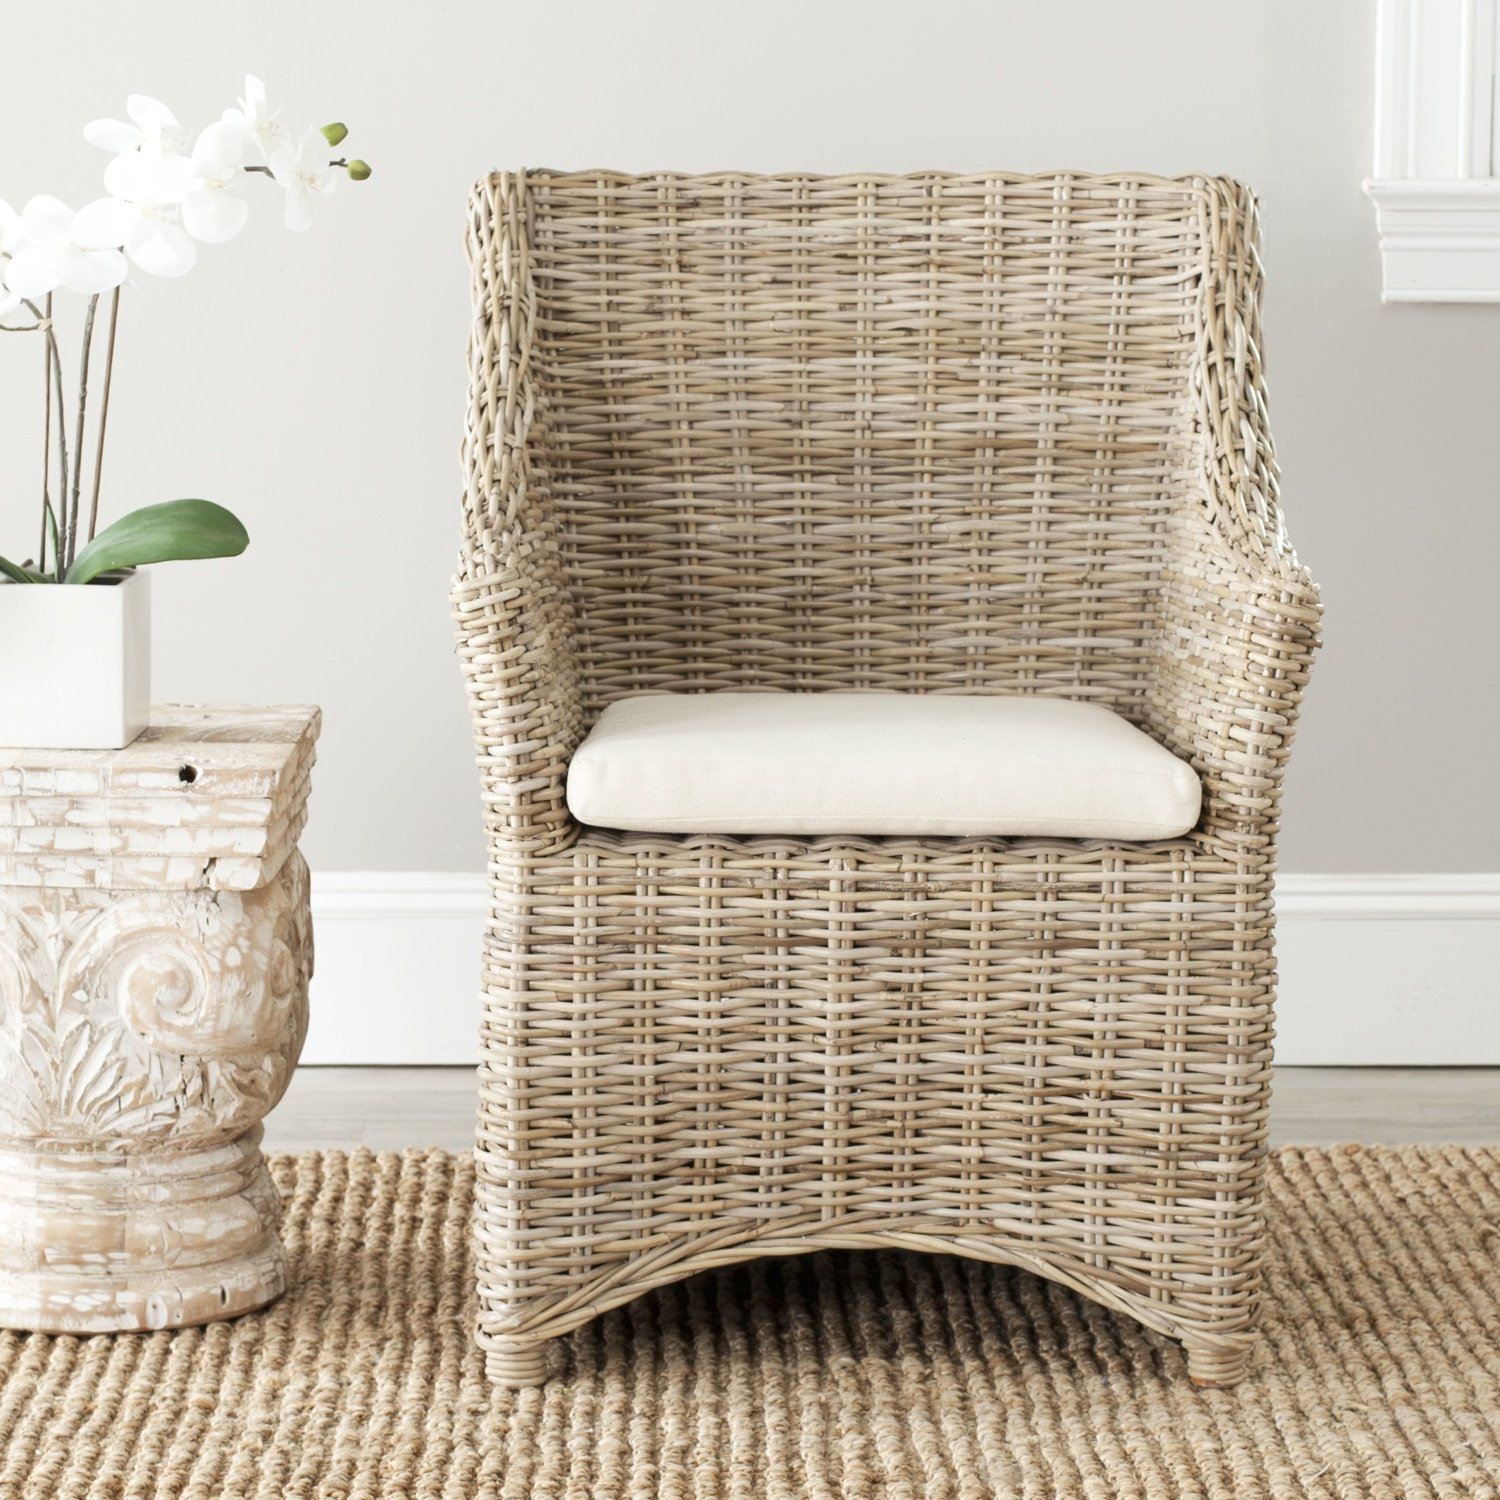 Natural Wicker vs Plastic Wicker Patio Furniture Information